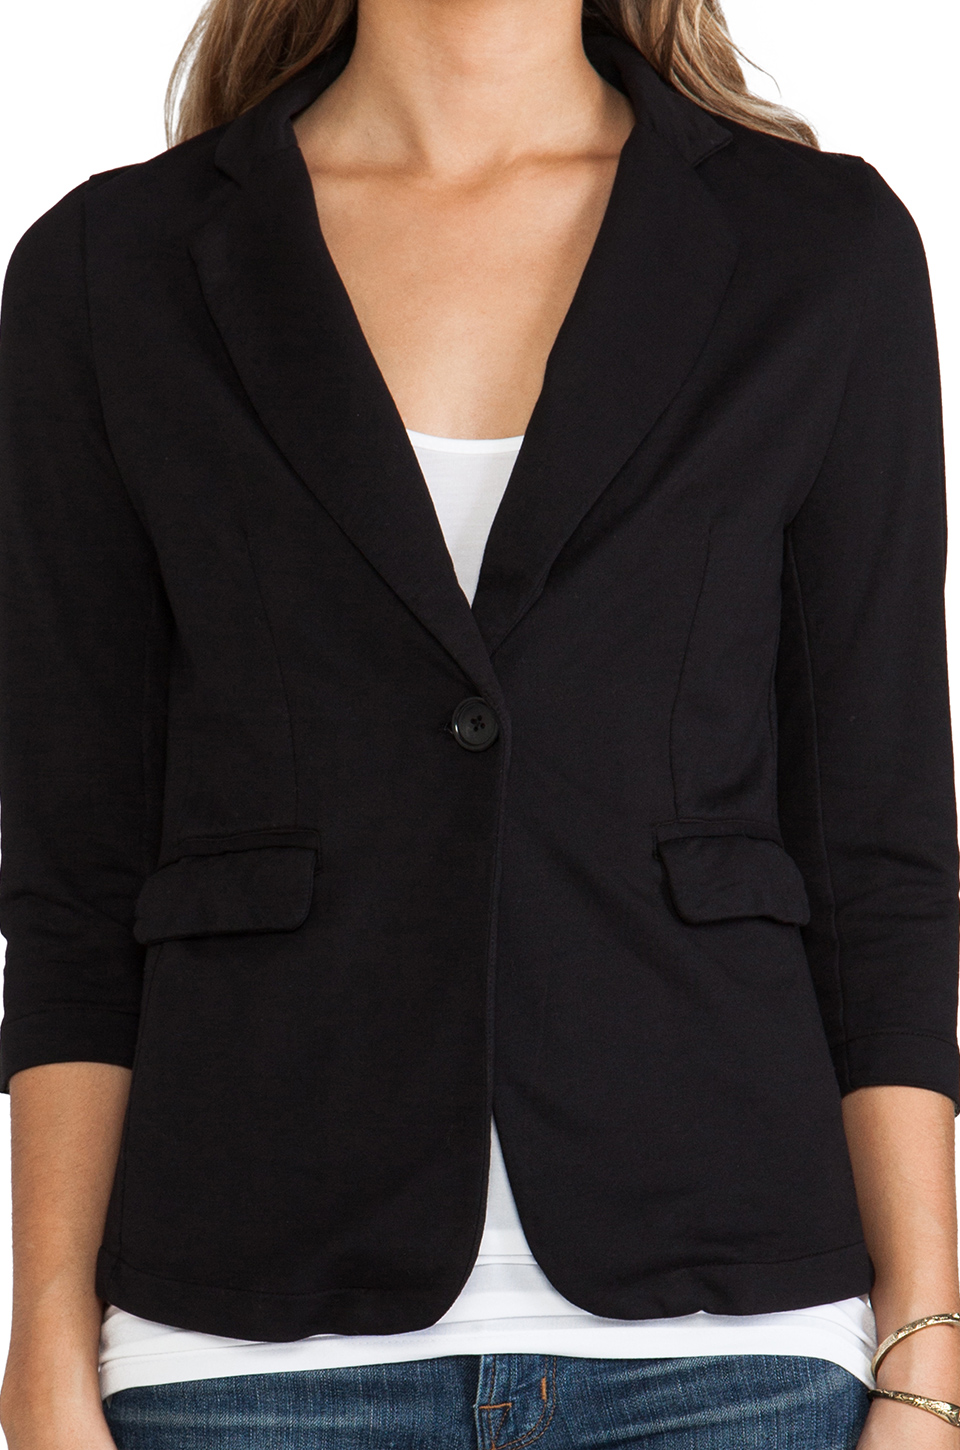 Bobi Blazer in Black